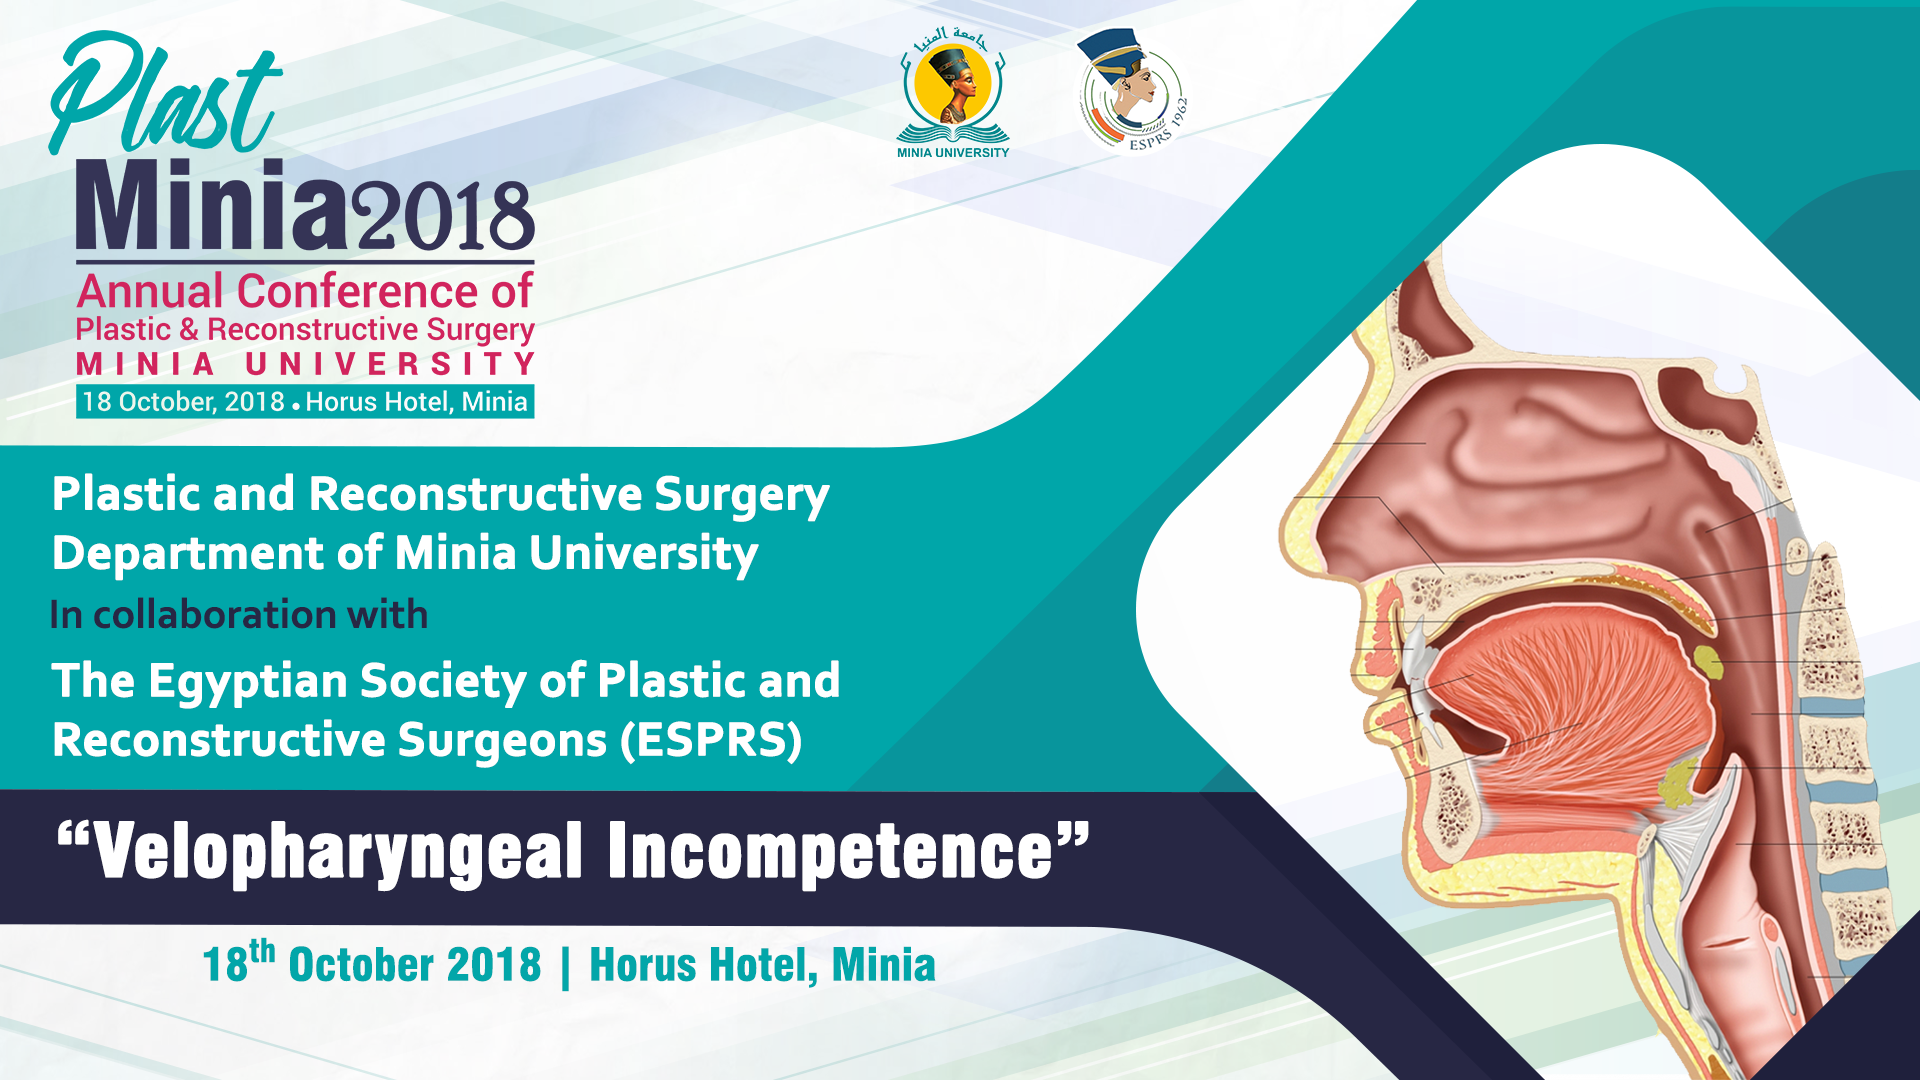 Annual Conference of Plastic and Reconstructive Surgery Department